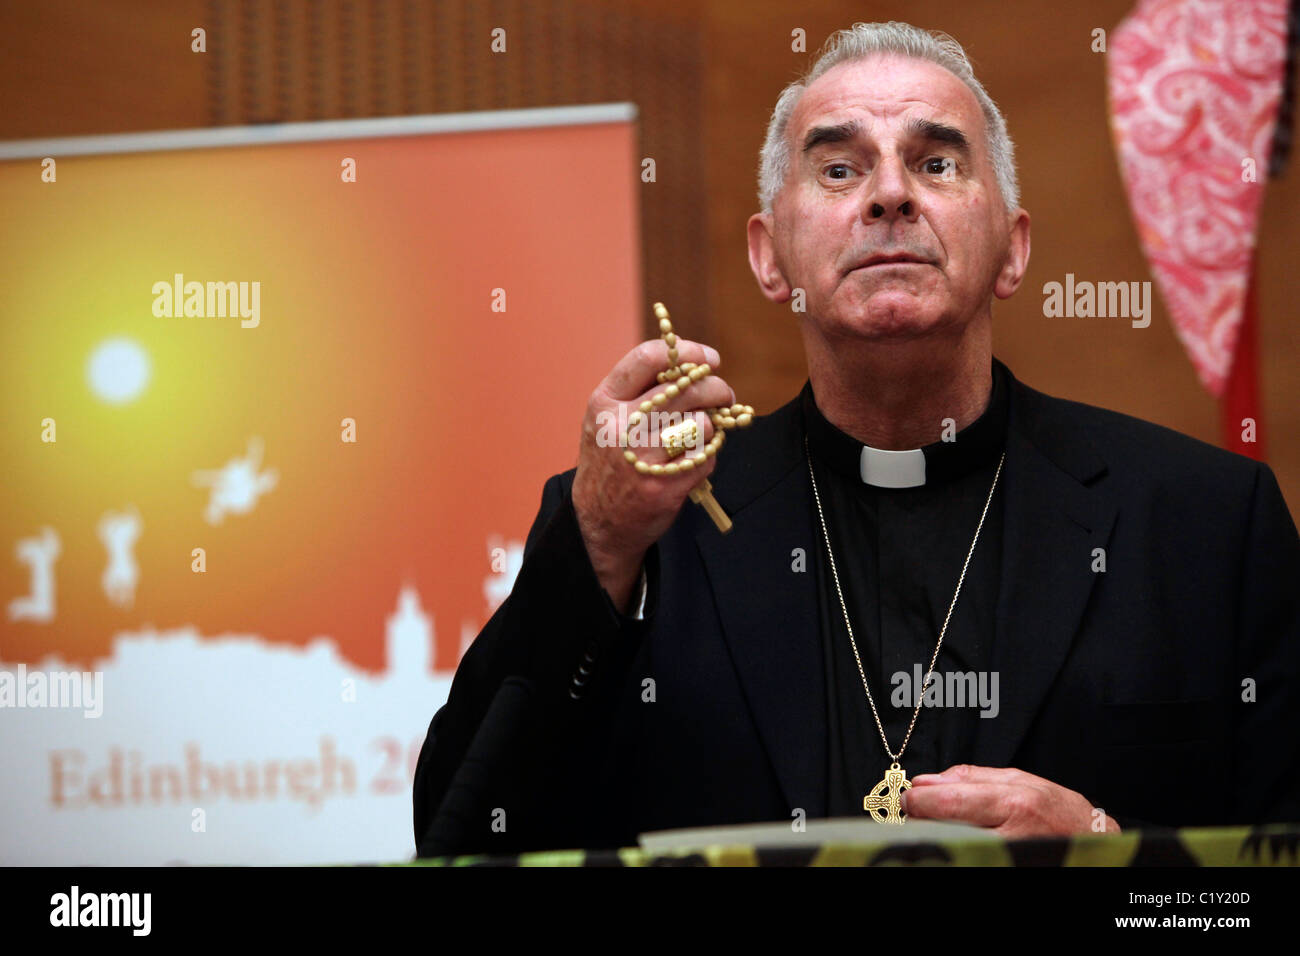 Cardinal Keith O'Brien of the Roman Catholic Church welcomes the delegates to the Edinburgh 2010 conference - Stock Image